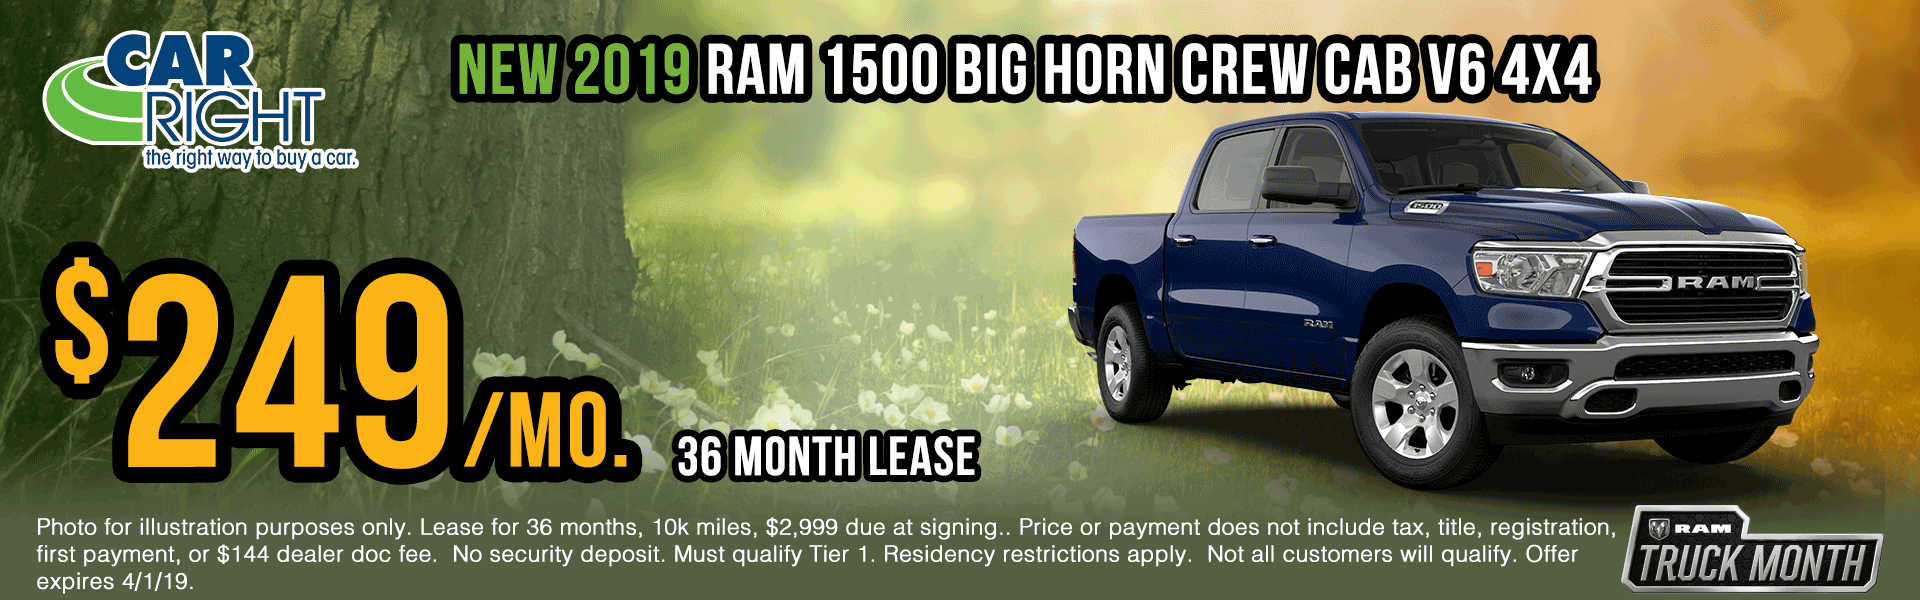 B3508-2019-ram-1500-big-horn-crew-cab-v6 Spring sales event ram truck month jeep specials Chrysler specials ram specials dodge specials mopar specials new vehicle specials carright specials moon twp